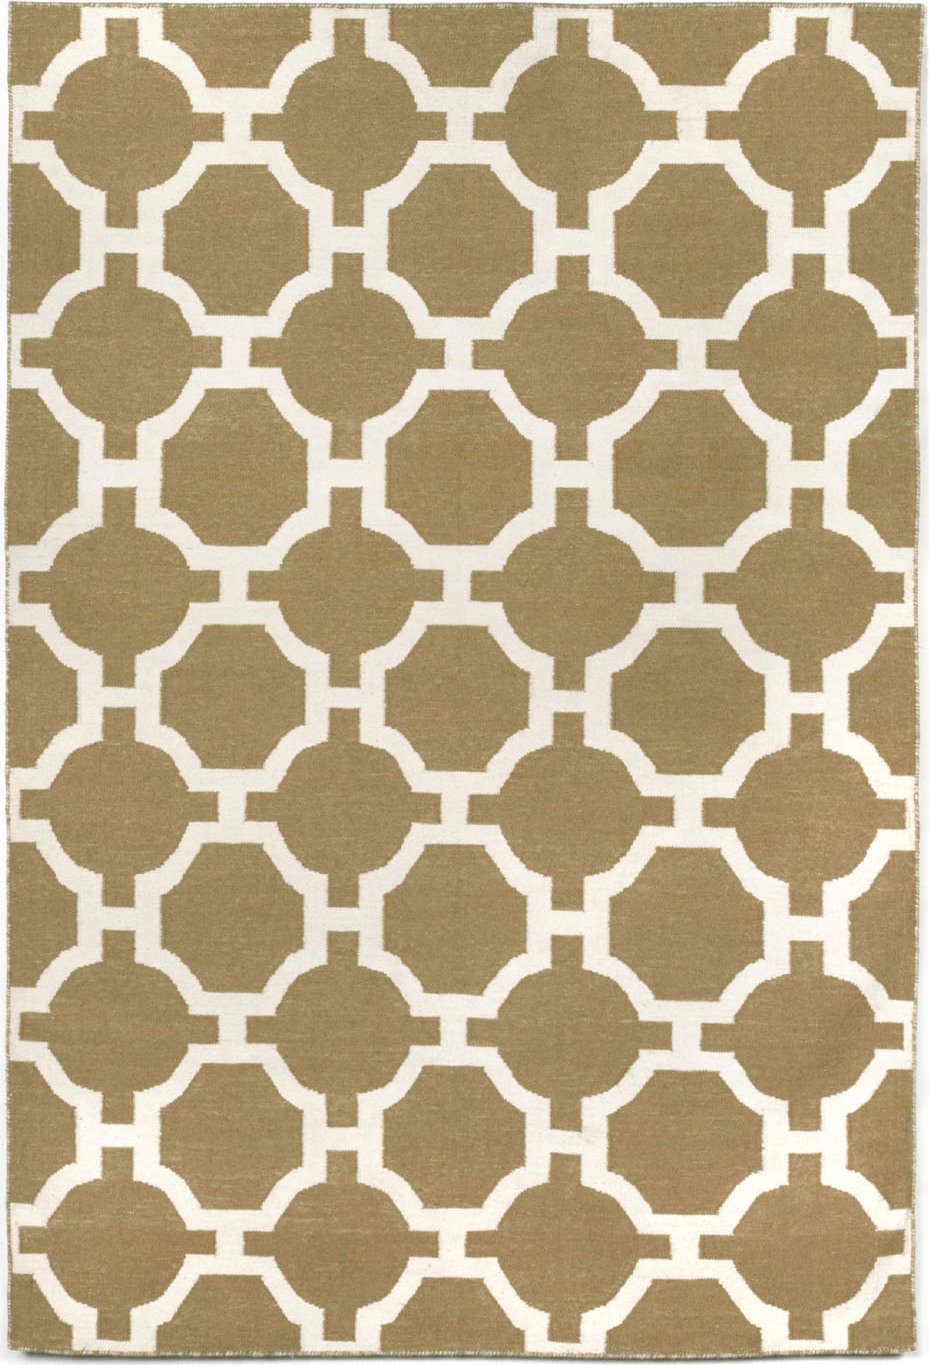 Hand woven assisi tile - khaki indoor outdoor area rug 5 ft x 7 ft 6in